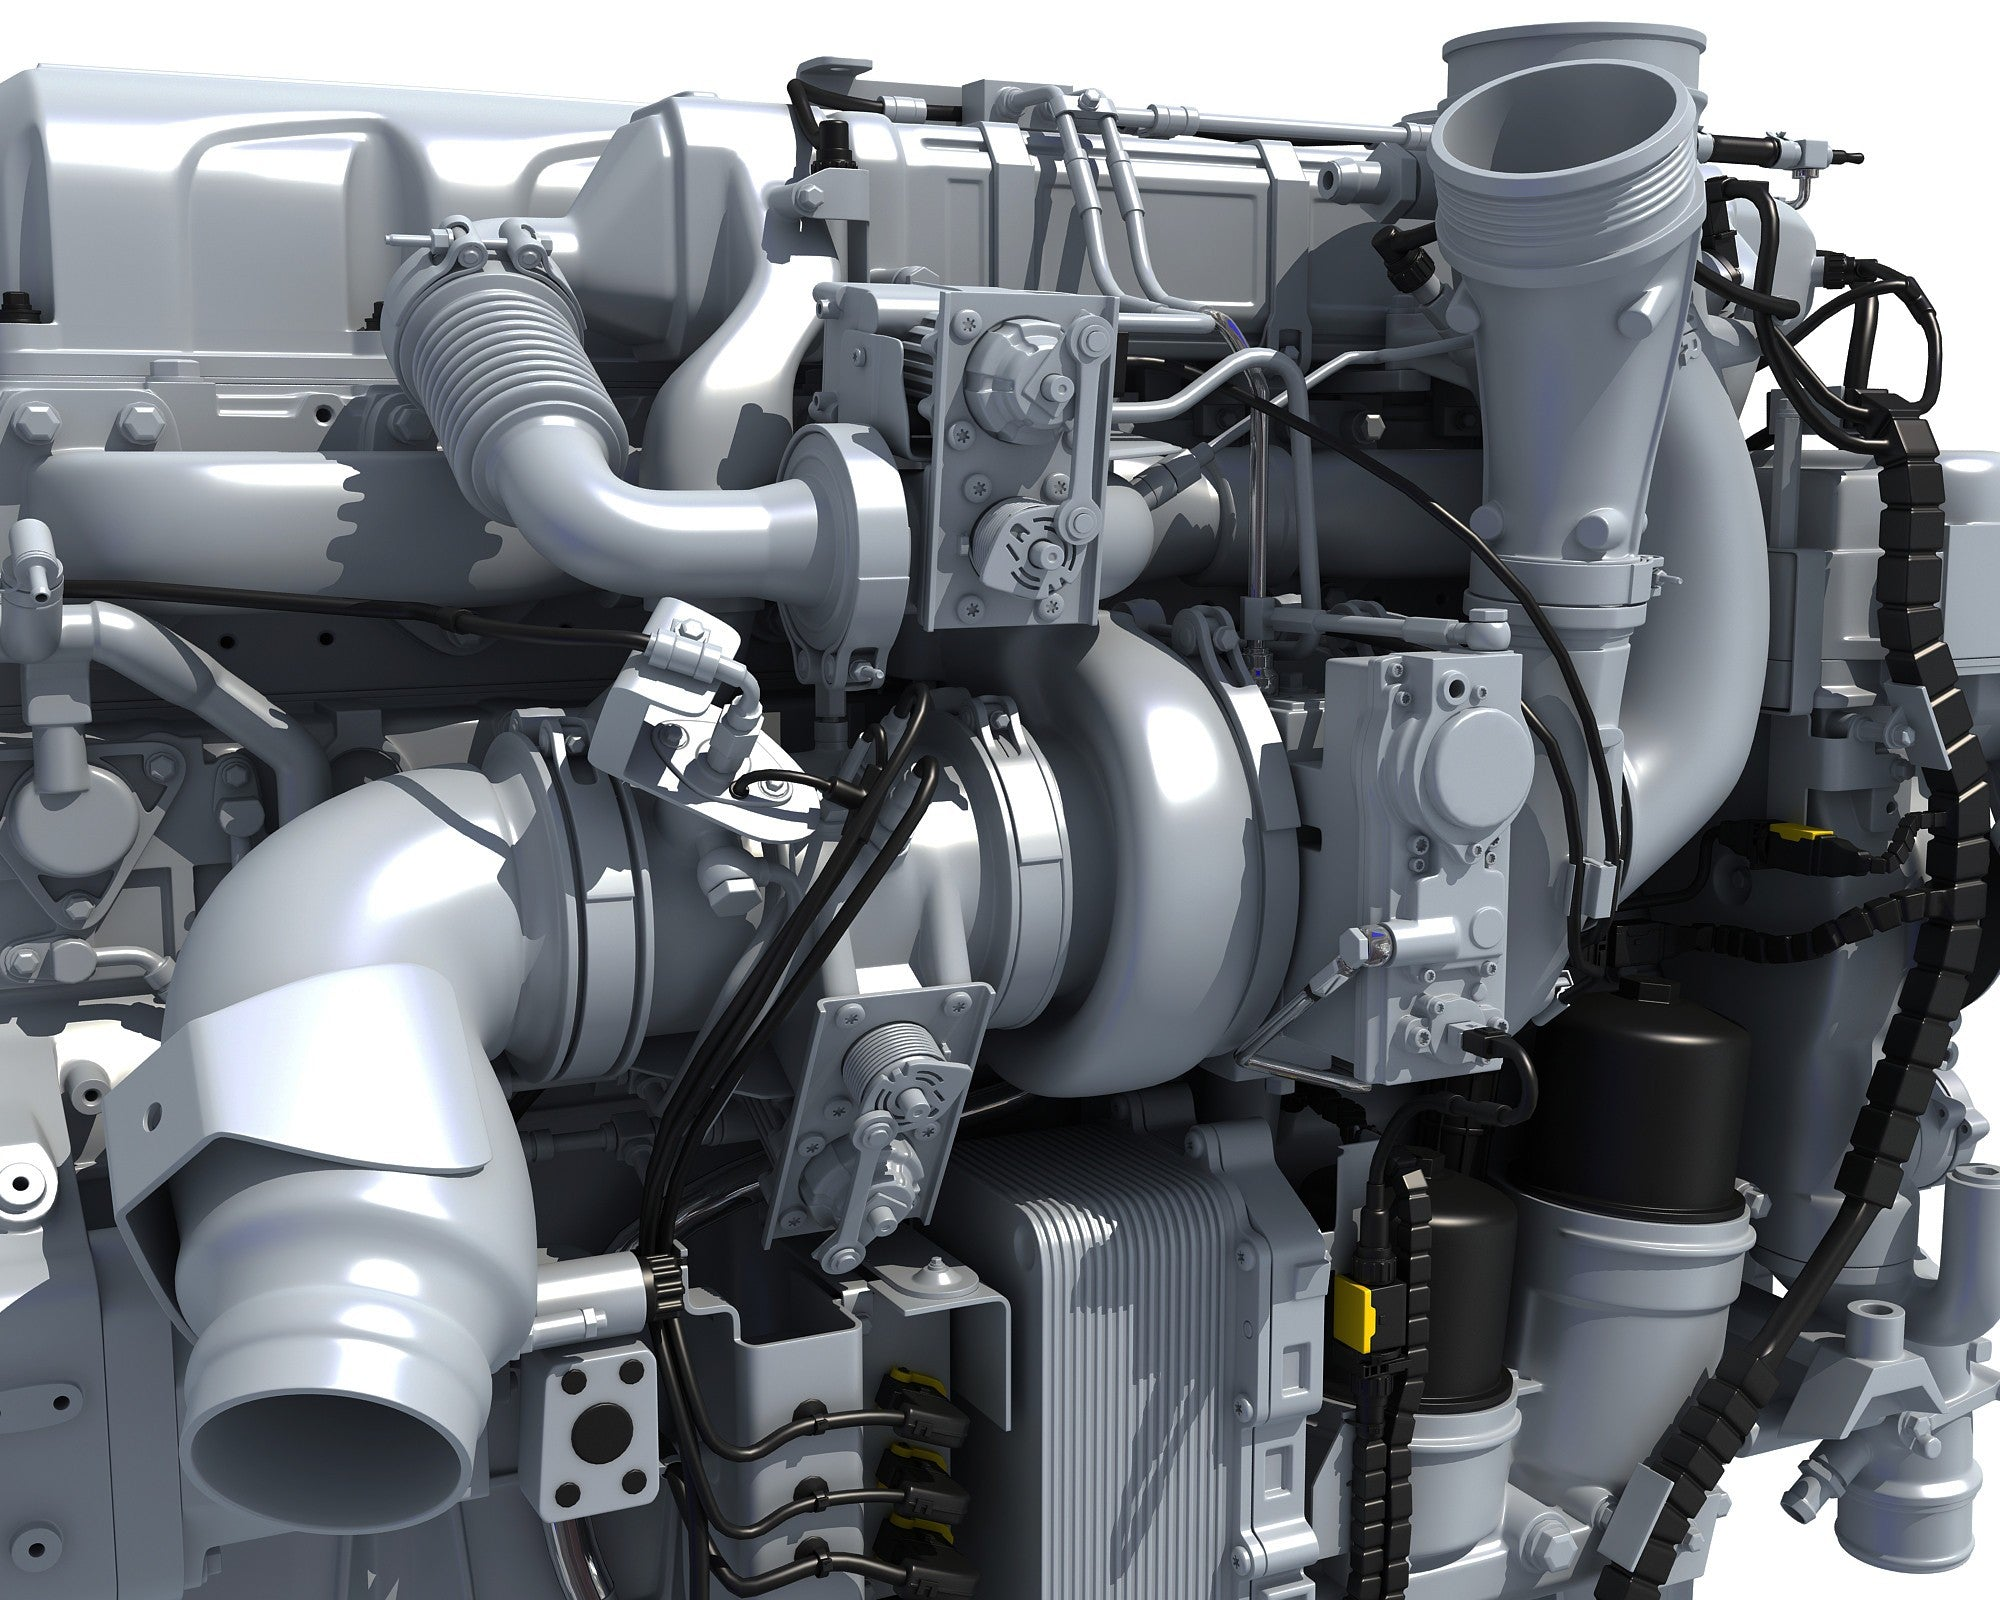 PACCAR MX-13 Powertrain Truck Engine